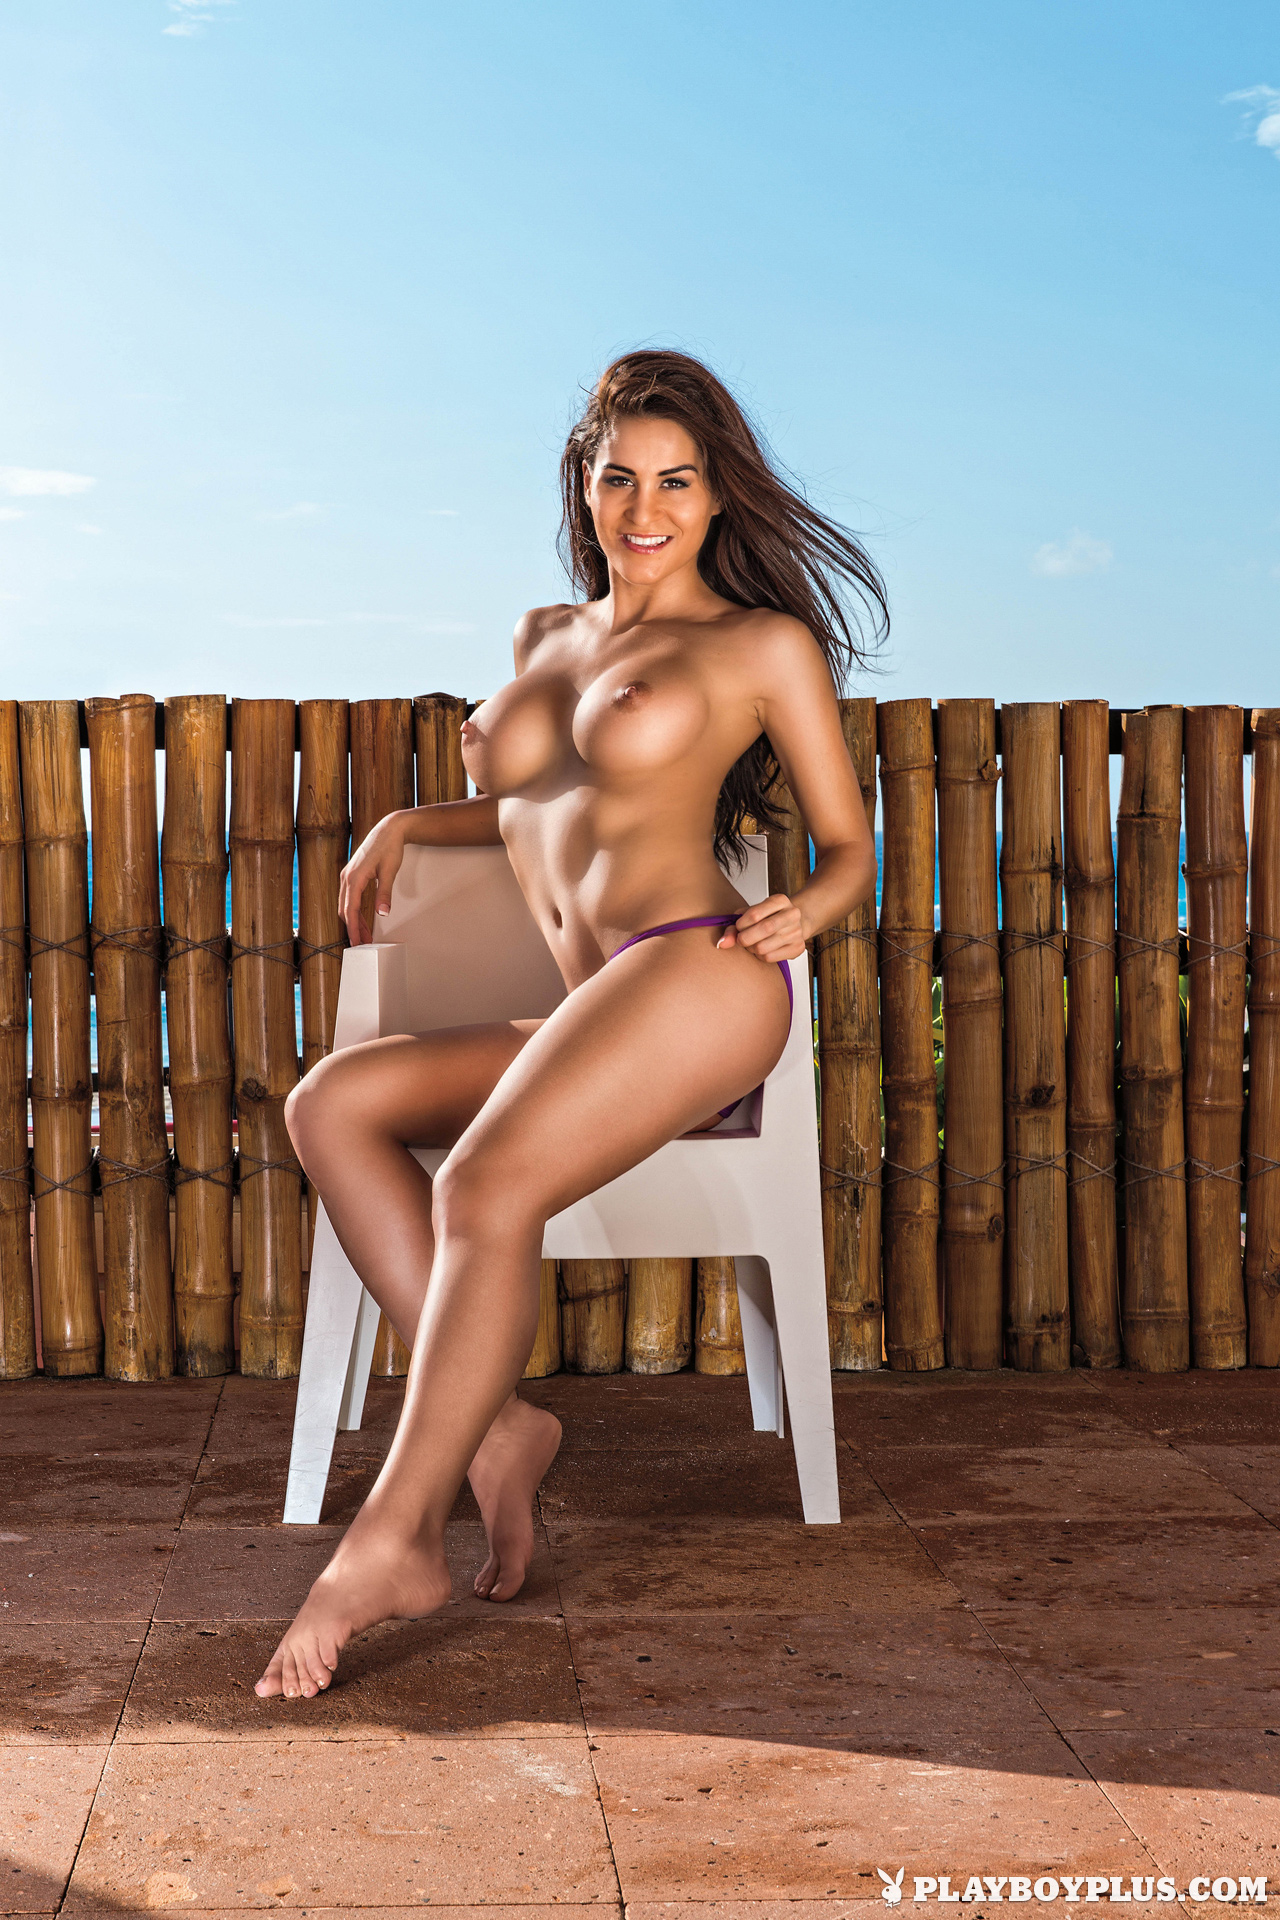 kerri-kendal-naked-mexico-playboy-05